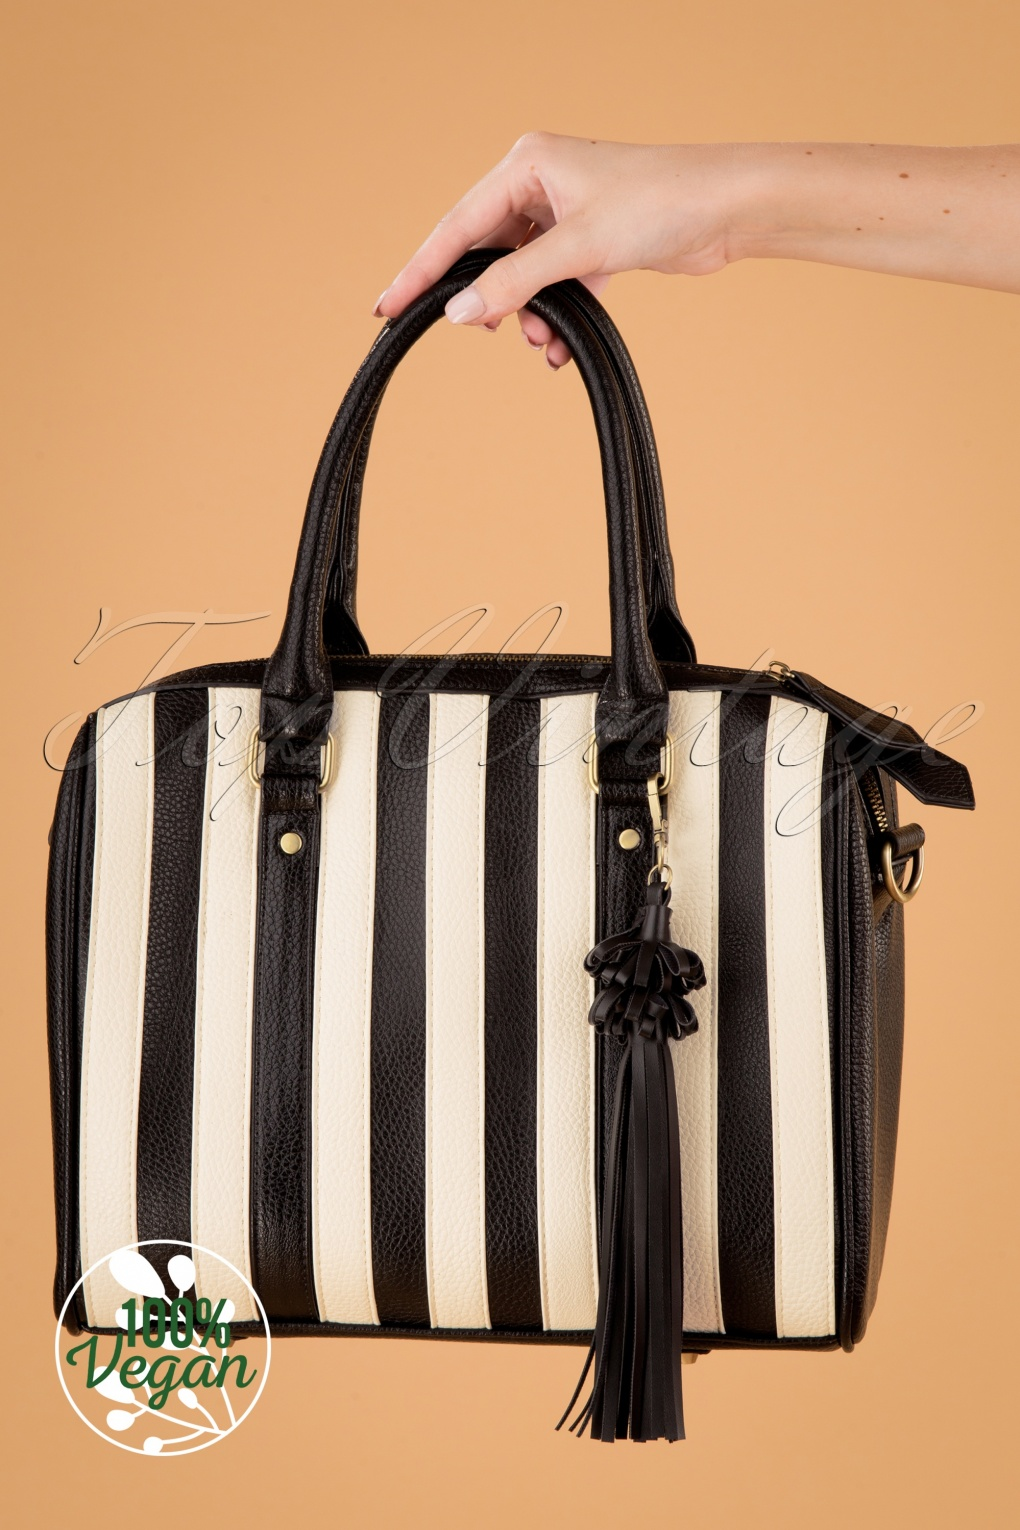 1950s Handbags, Purses, and Evening Bag Styles 50s Viola Small Handbag in Black and White £68.13 AT vintagedancer.com